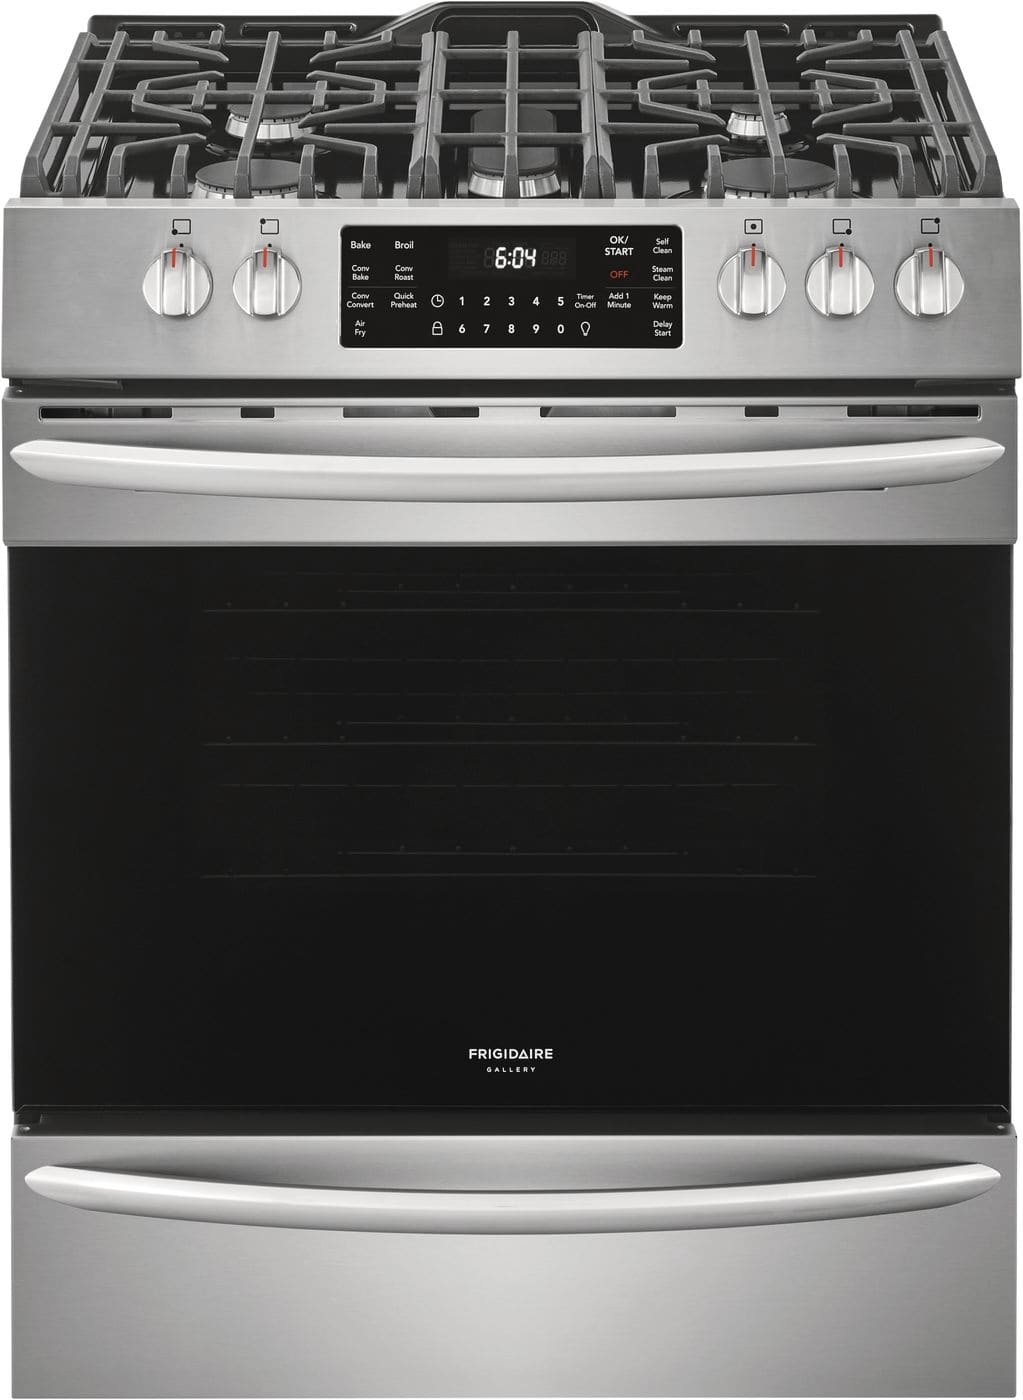 "Frigidaire 30"" Front Control Gas Range with Air Fry"